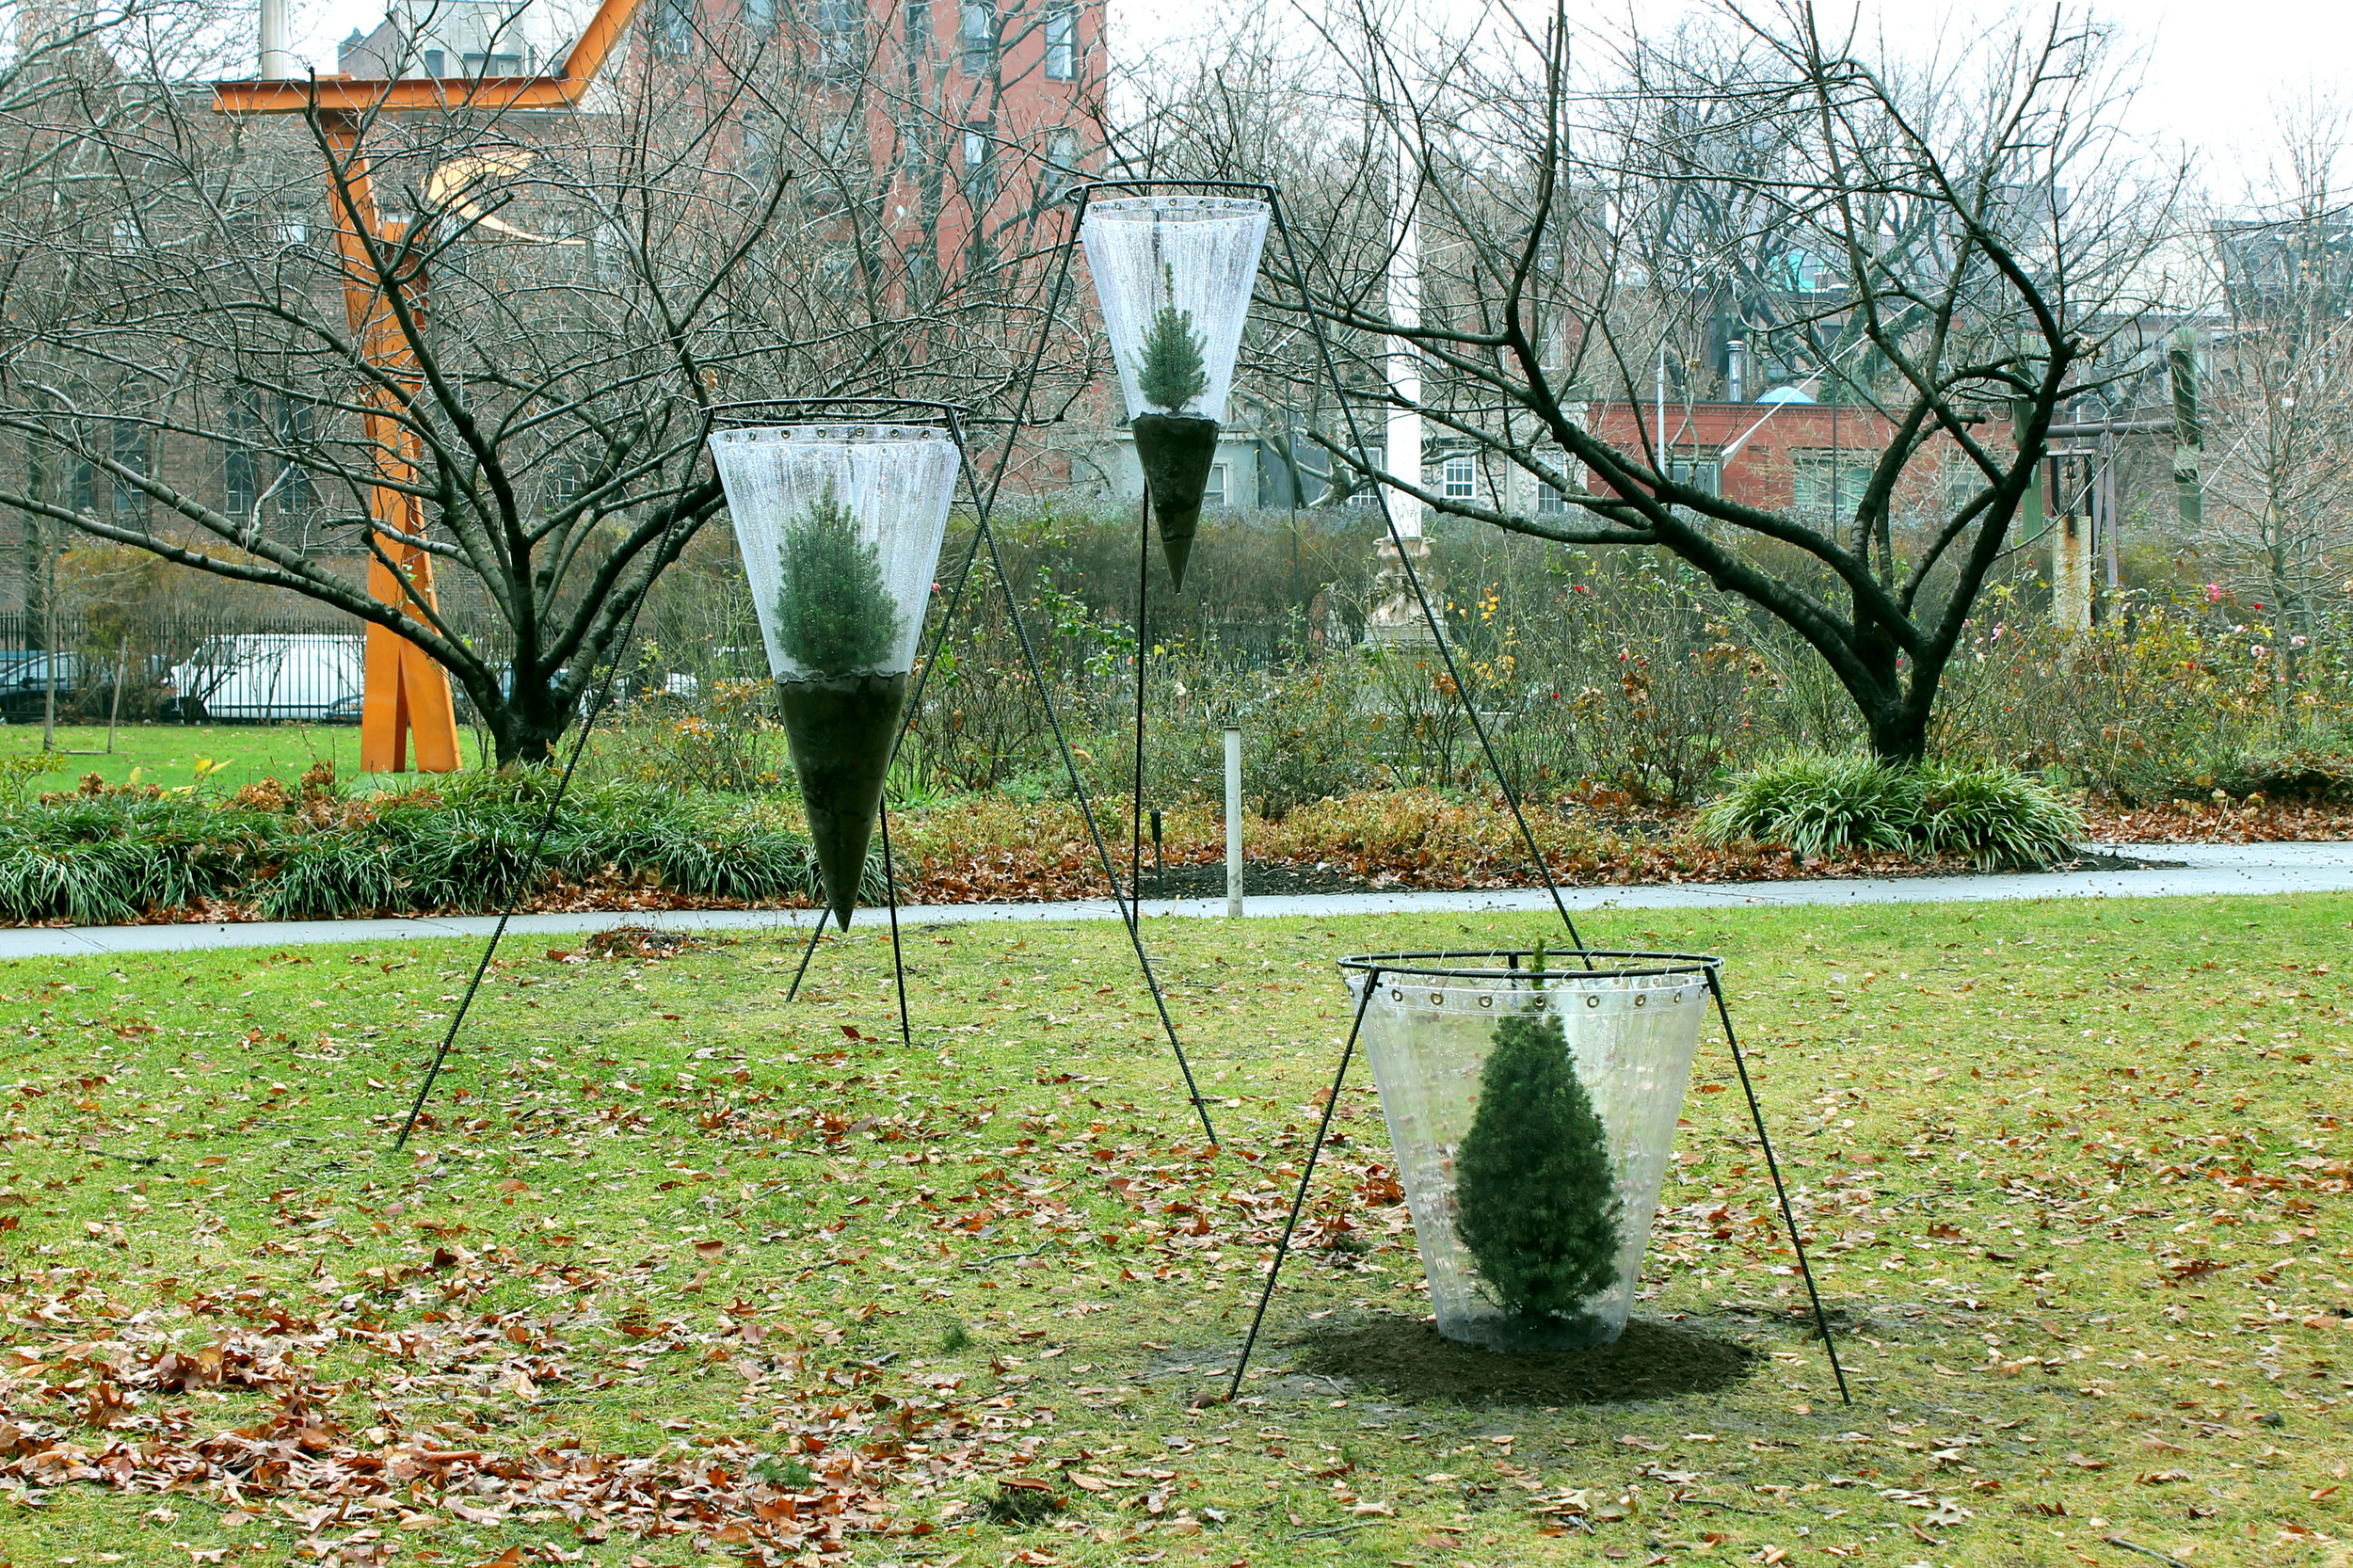 Ascent  / 2012-15 / Clear vinyl, steel, grommets, cable, soil, spruce trees / 8' x 27' x 12'